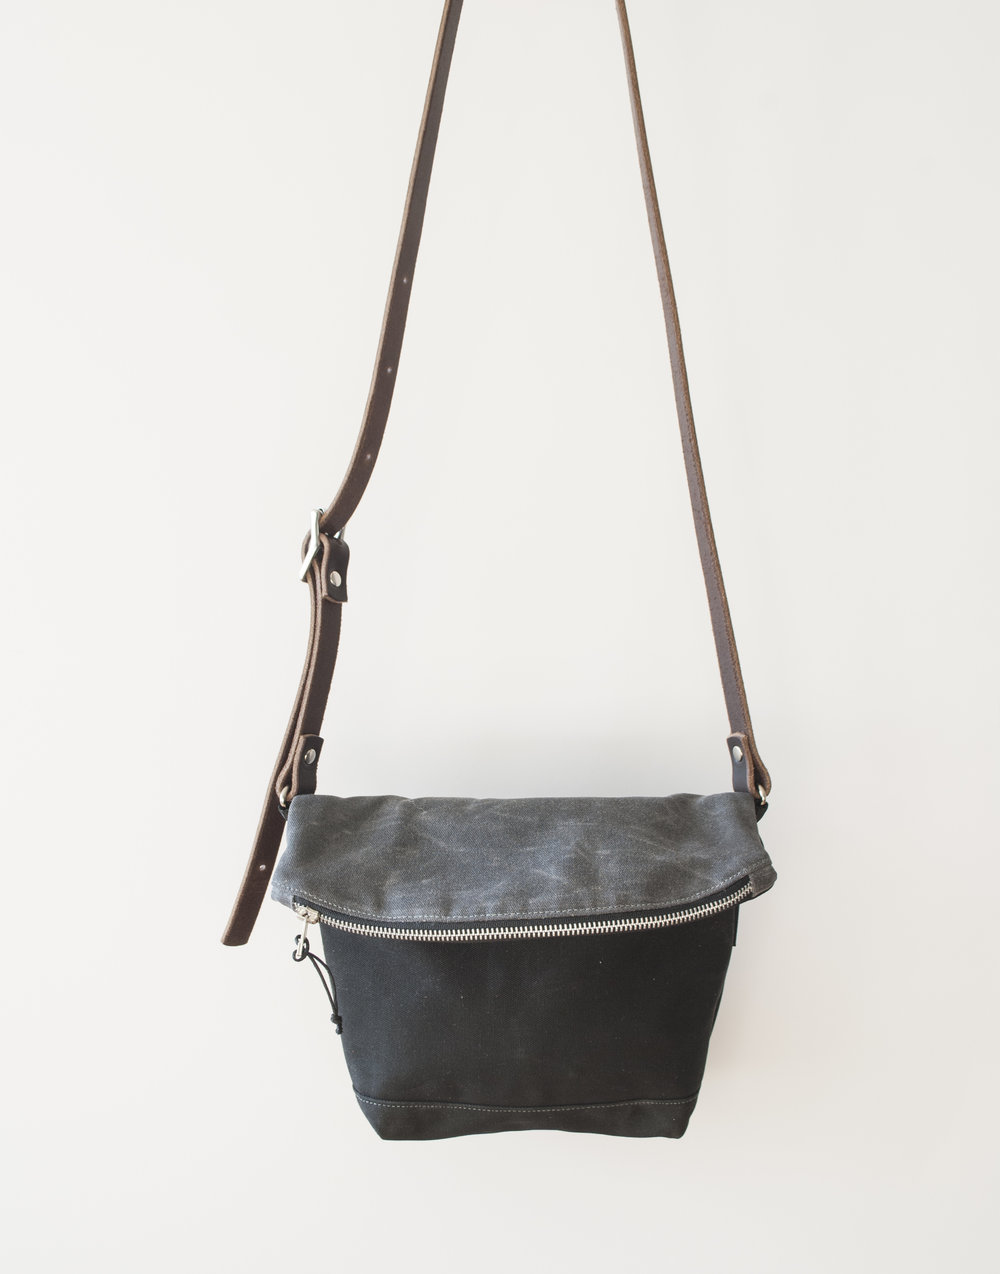 Fold Down Char/Blk Crossbody Bag